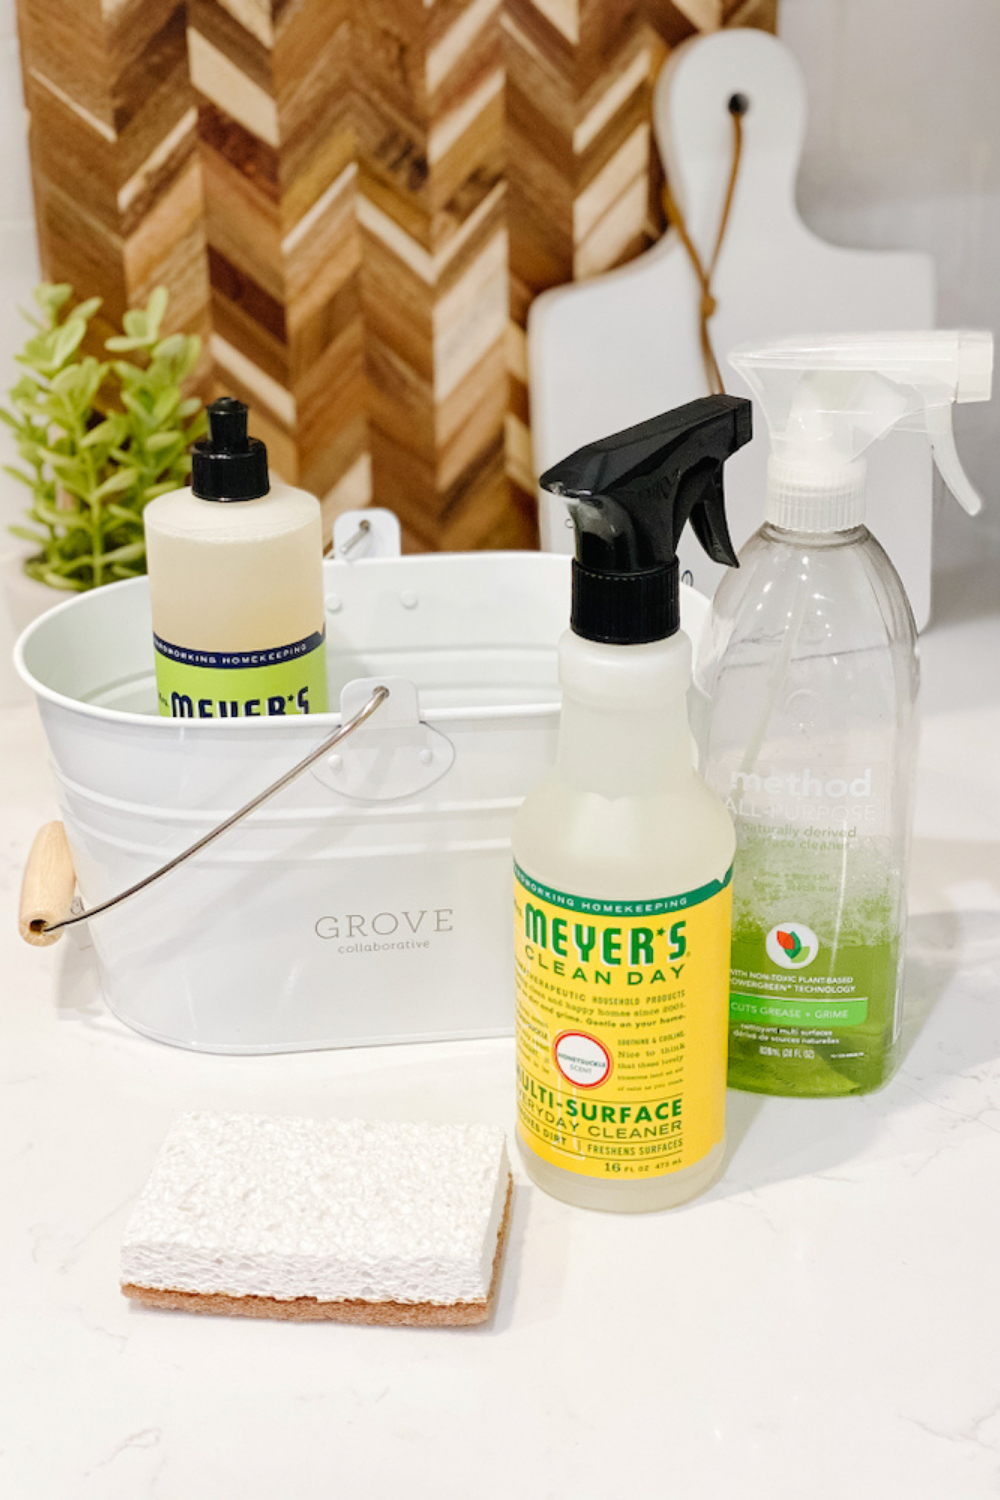 FREE Cleaning Set from Grove Collaborative